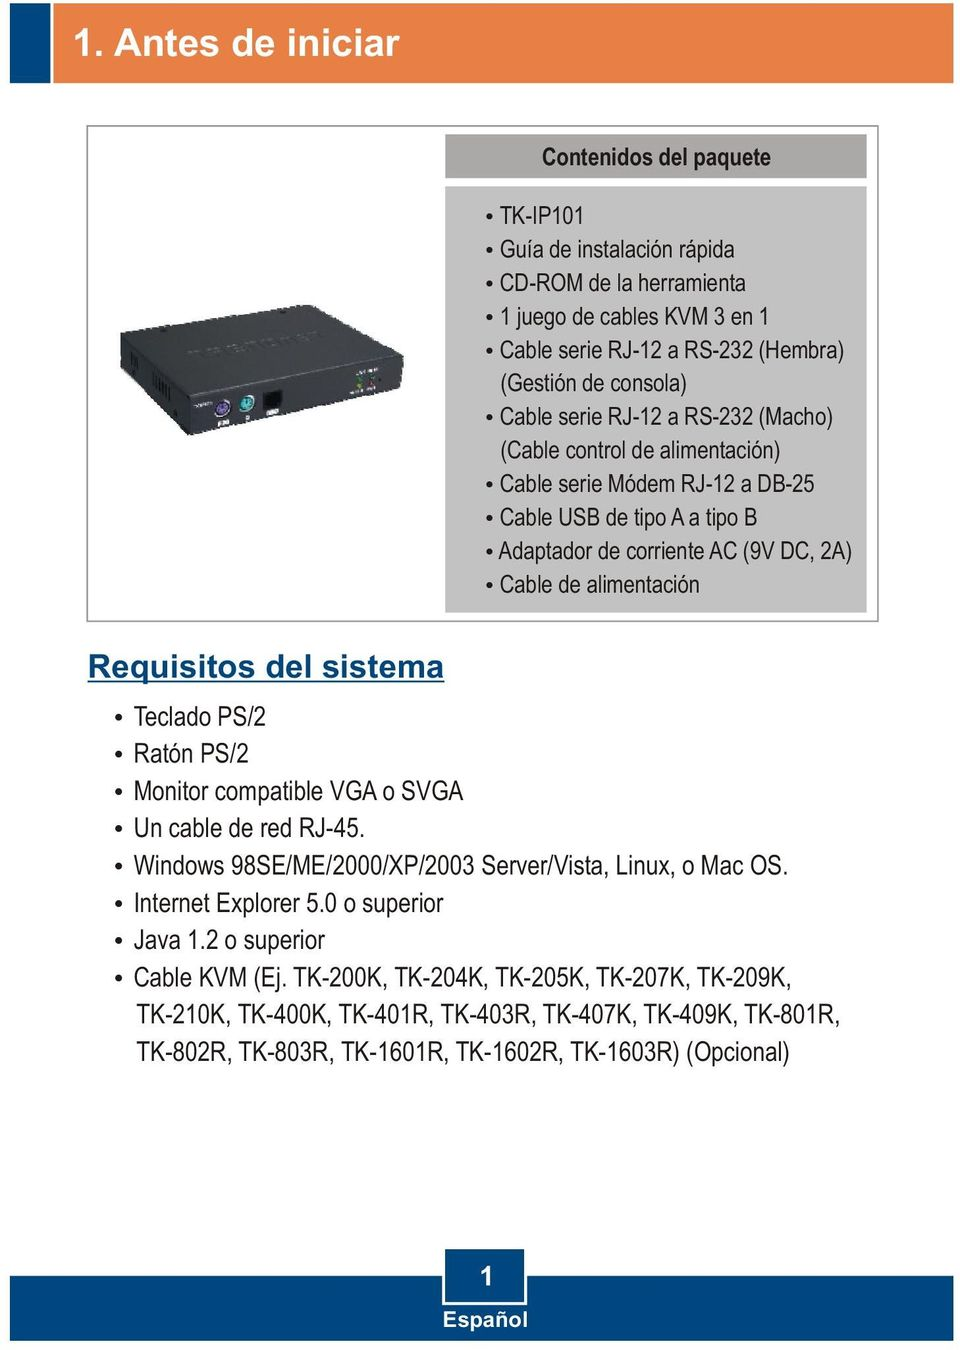 Requisitos del sistema Teclado PS/2 Ratón PS/2 Monitor compatible VGA o SVGA Un cable de red RJ-45. Windows 98SE/ME/2000/XP/2003 Server/Vista, Linux, o Mac OS. Internet Explorer 5.